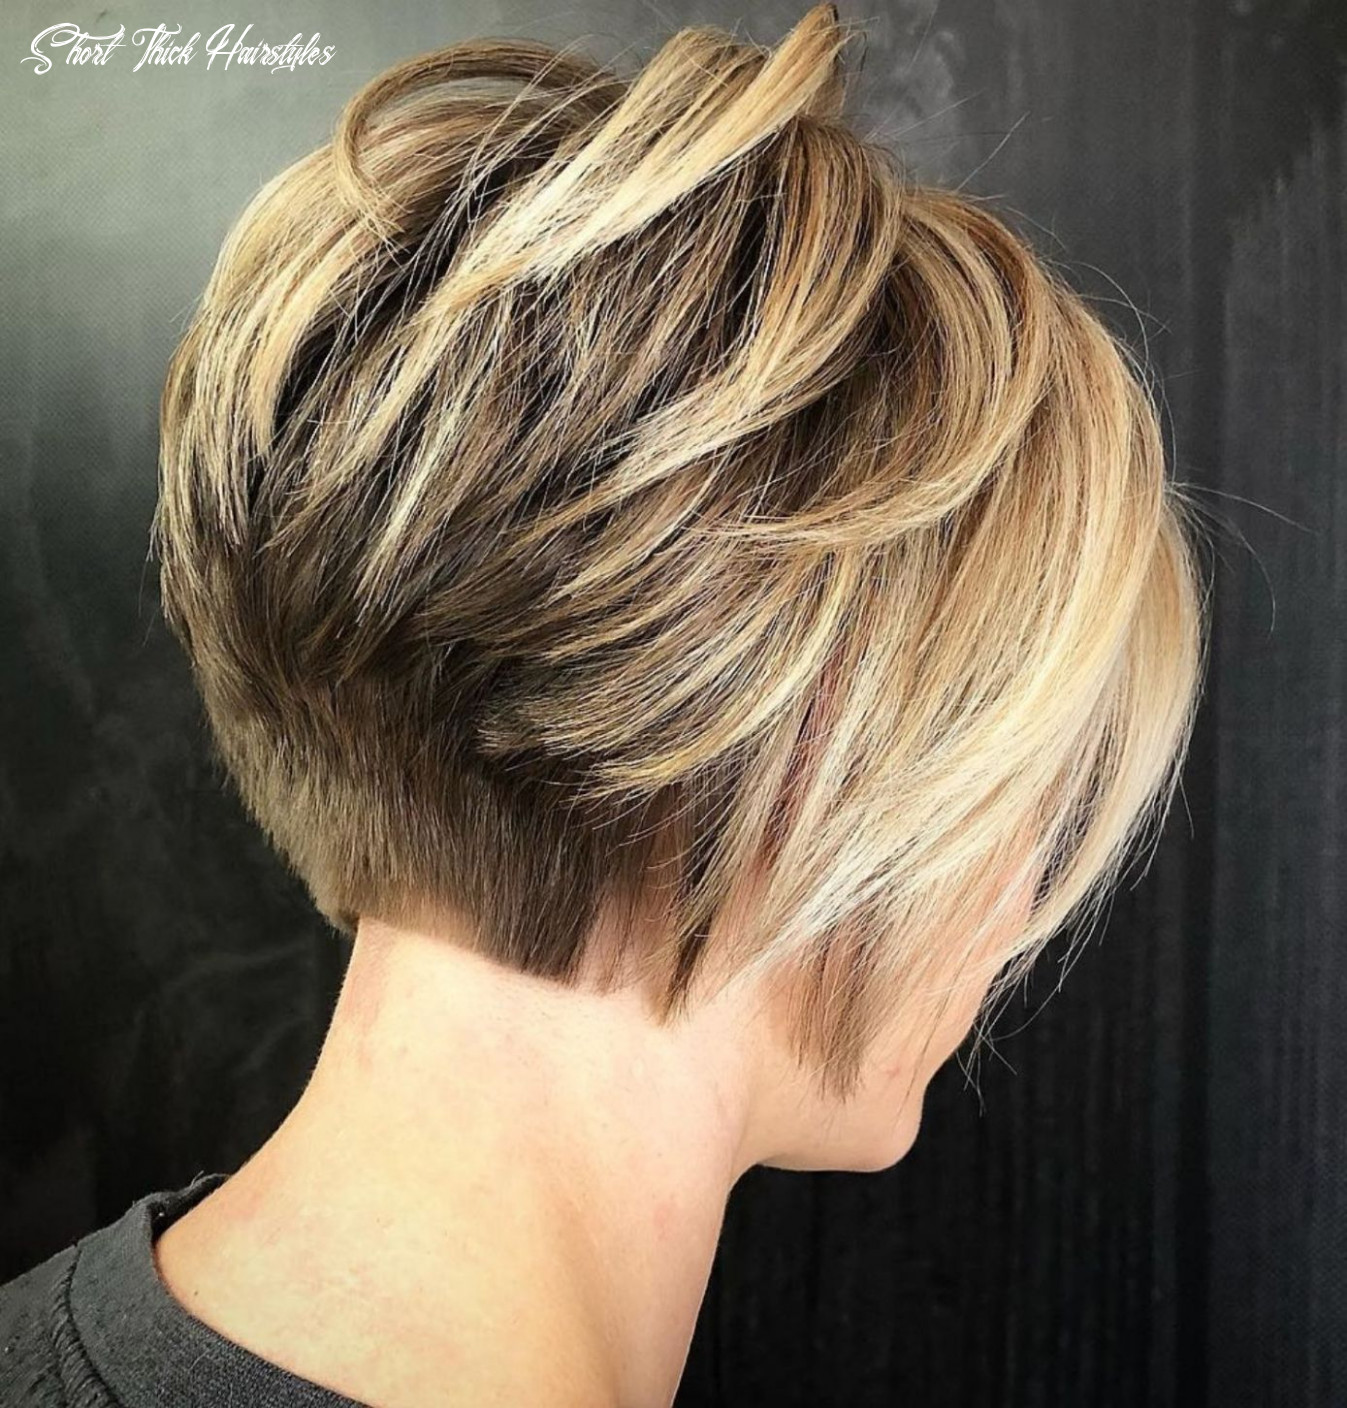 Pin on stacked layered bob short thick hairstyles